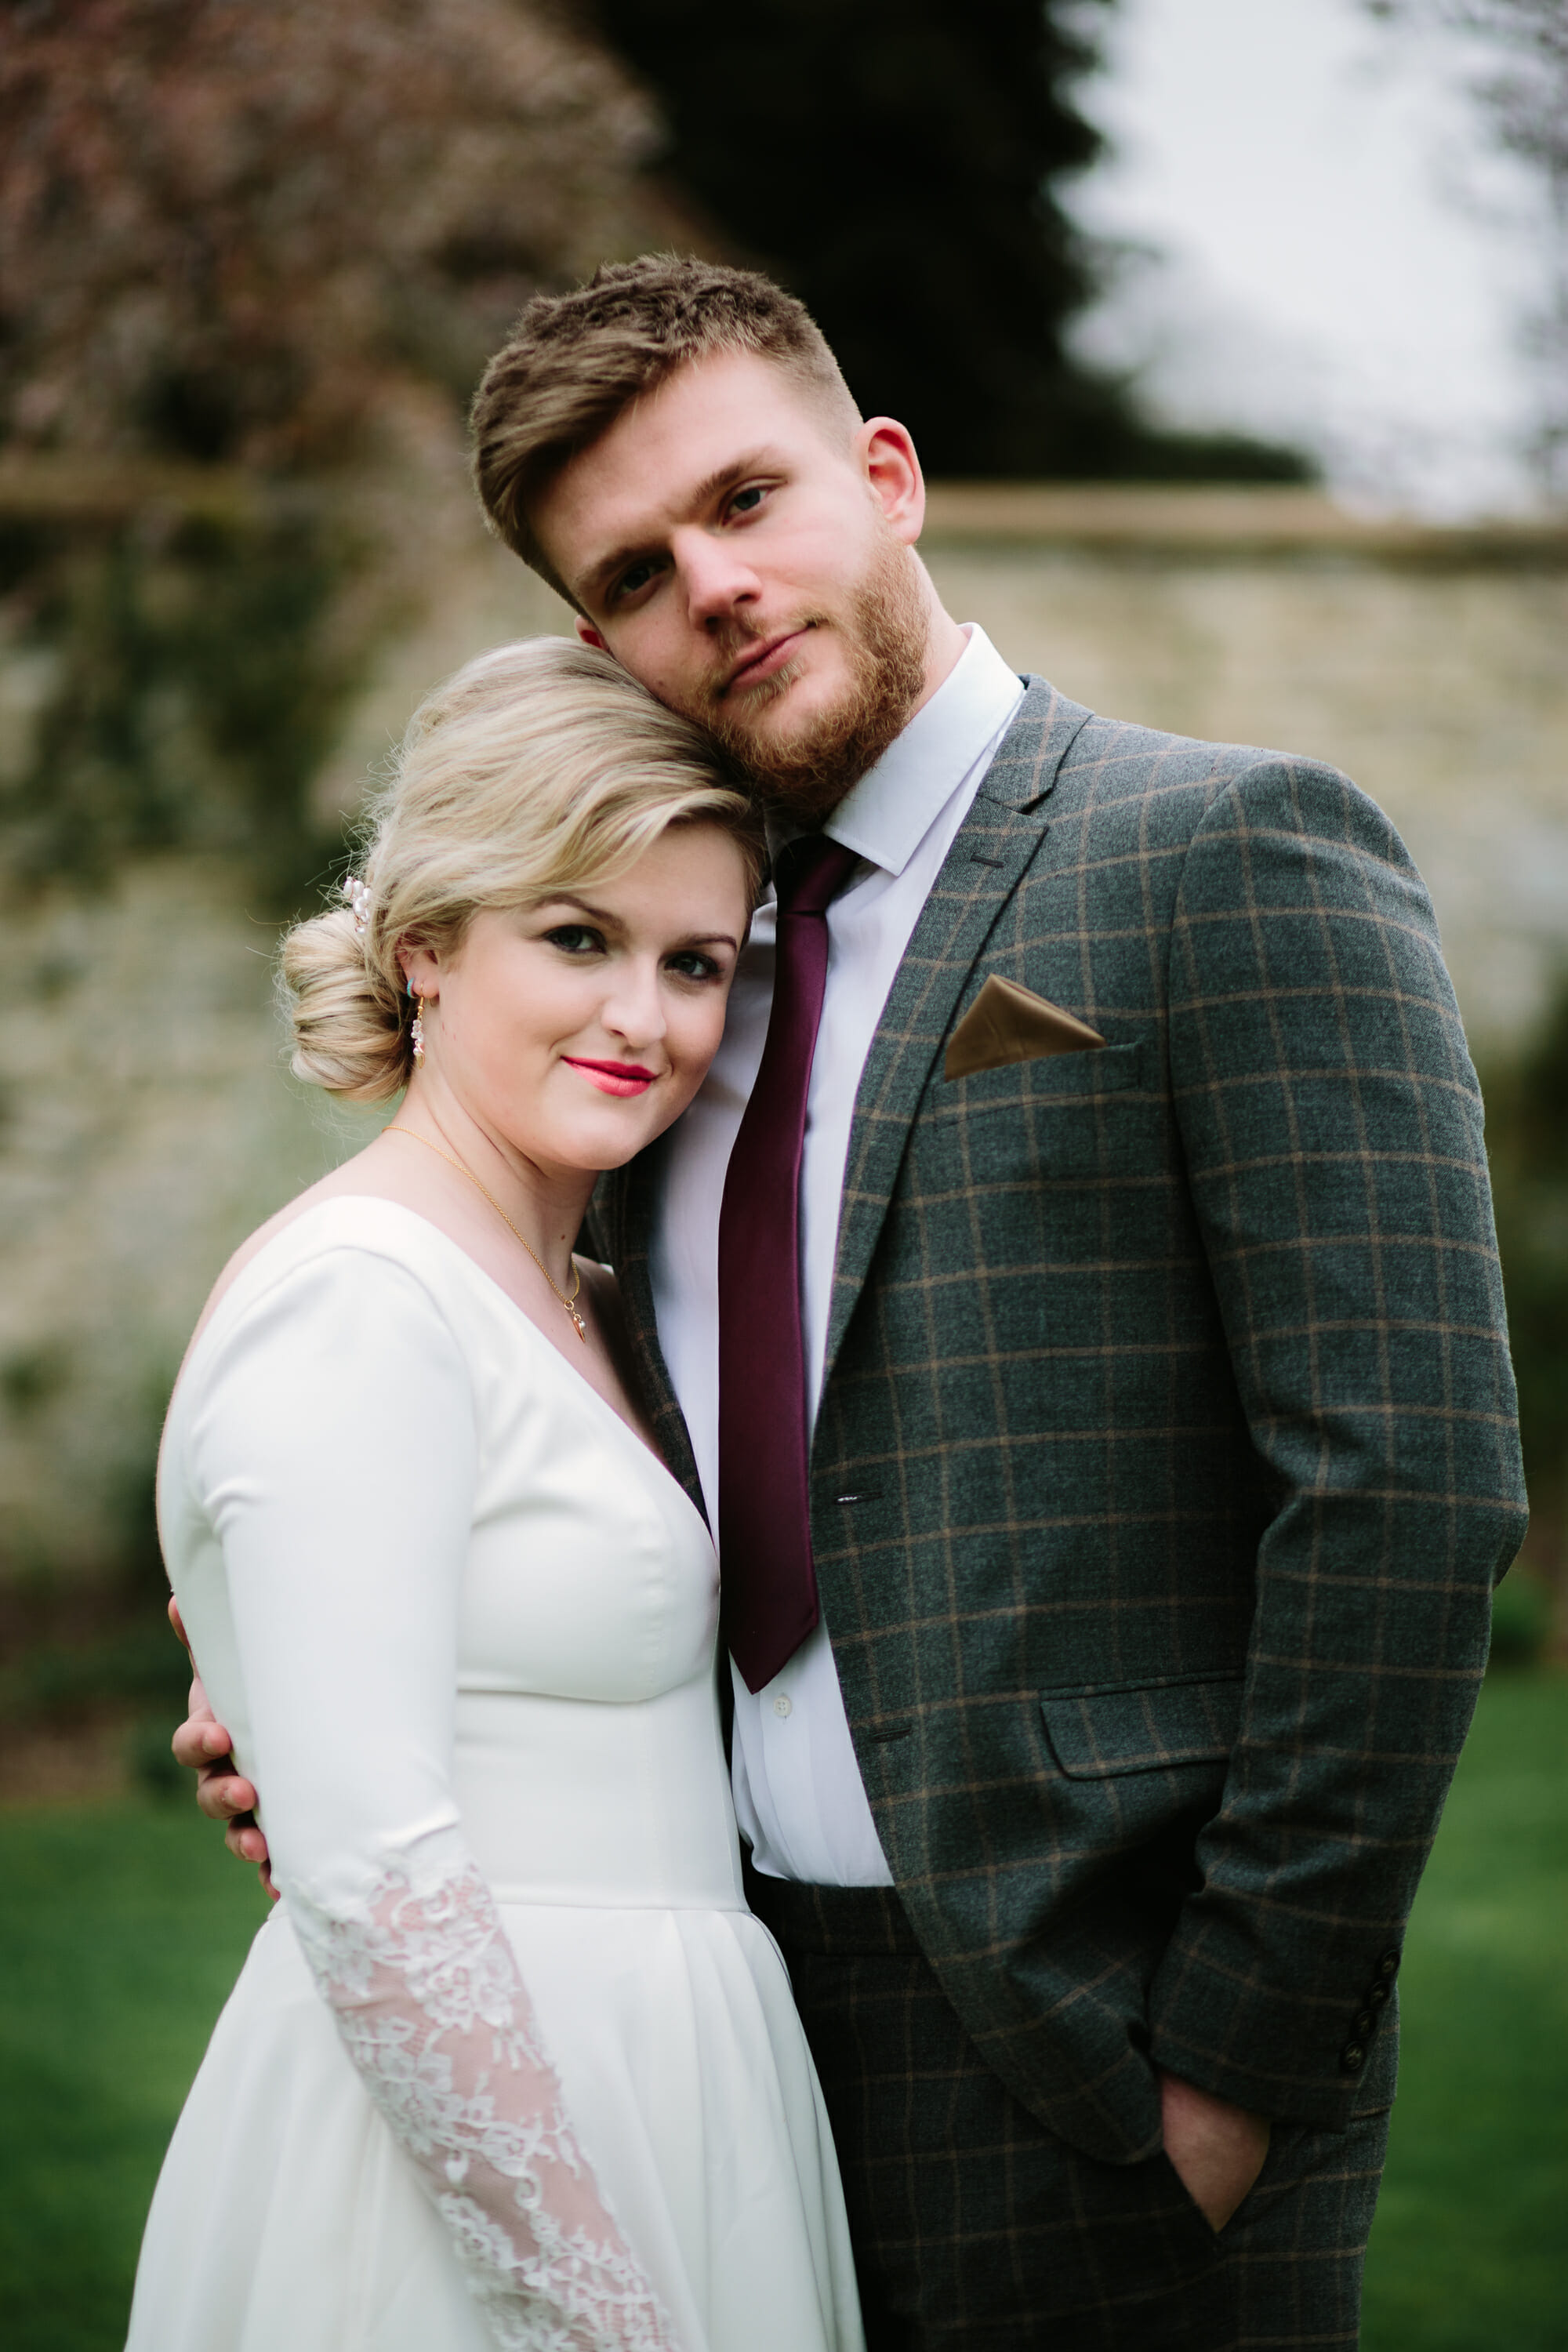 Wedding Portraits in Oxfordshire